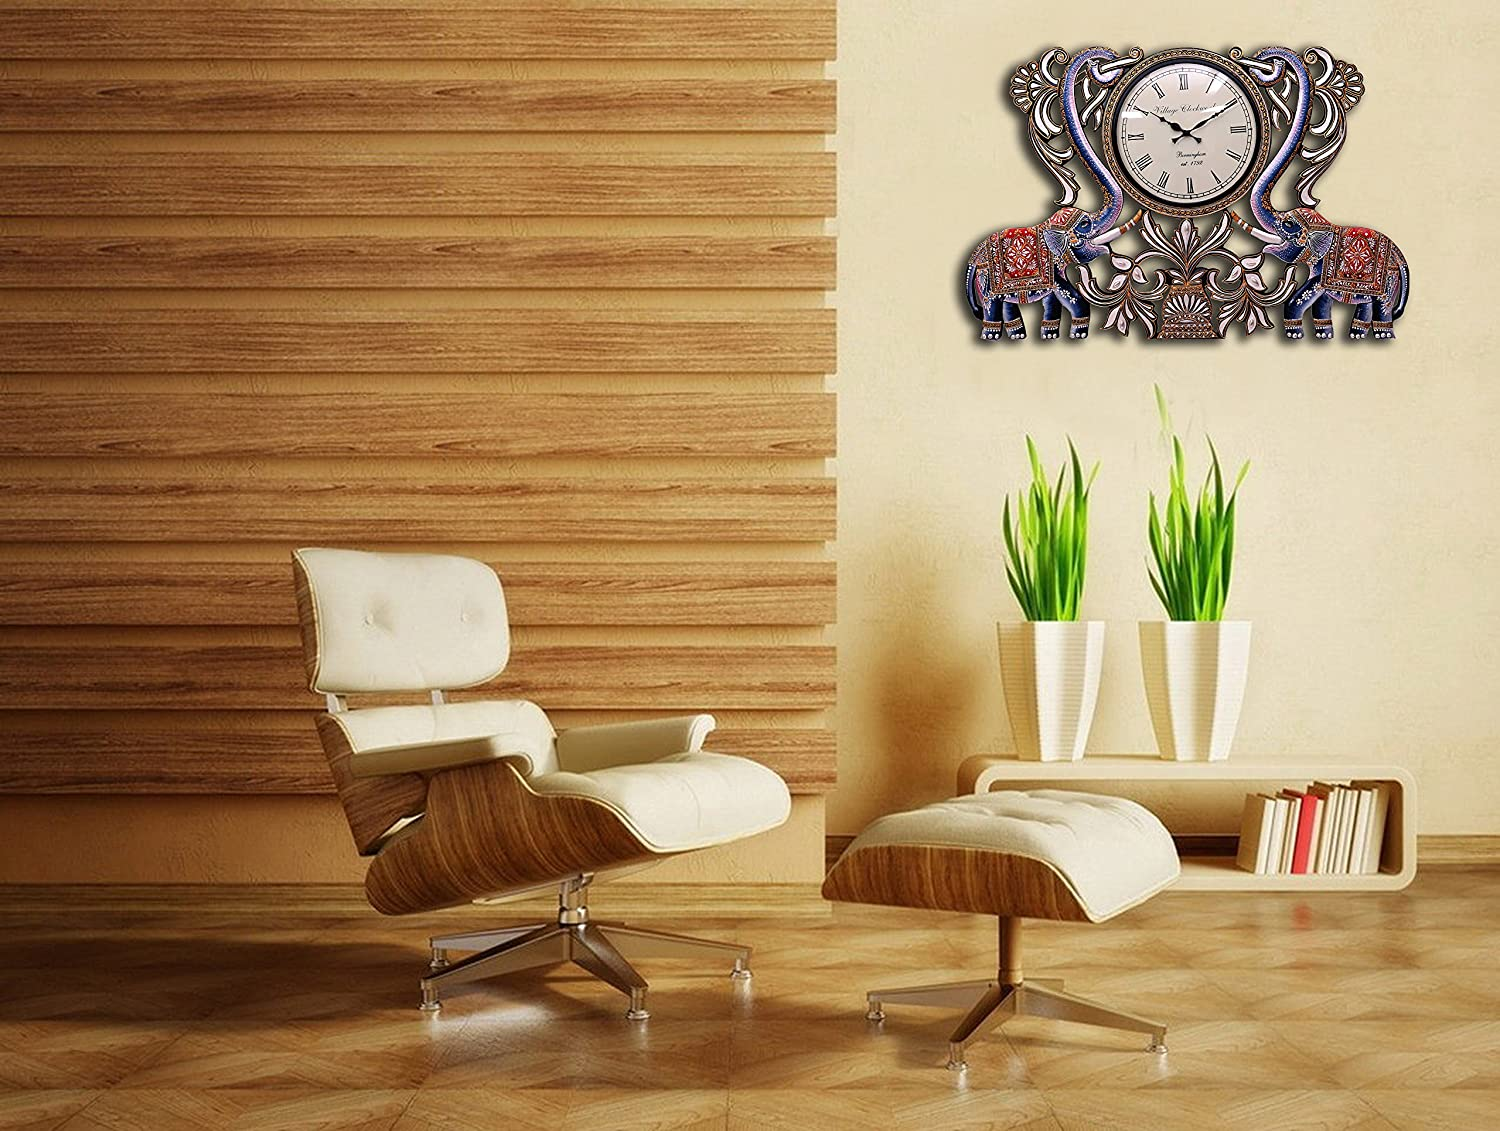 living room wall clocks. Buy Collectible India 3 Feet Wooden Wall Clock Handmade Home Decorative Vintage Mounted Hanging Showpiece Gifts Online At Low Prices In Living Room Clocks